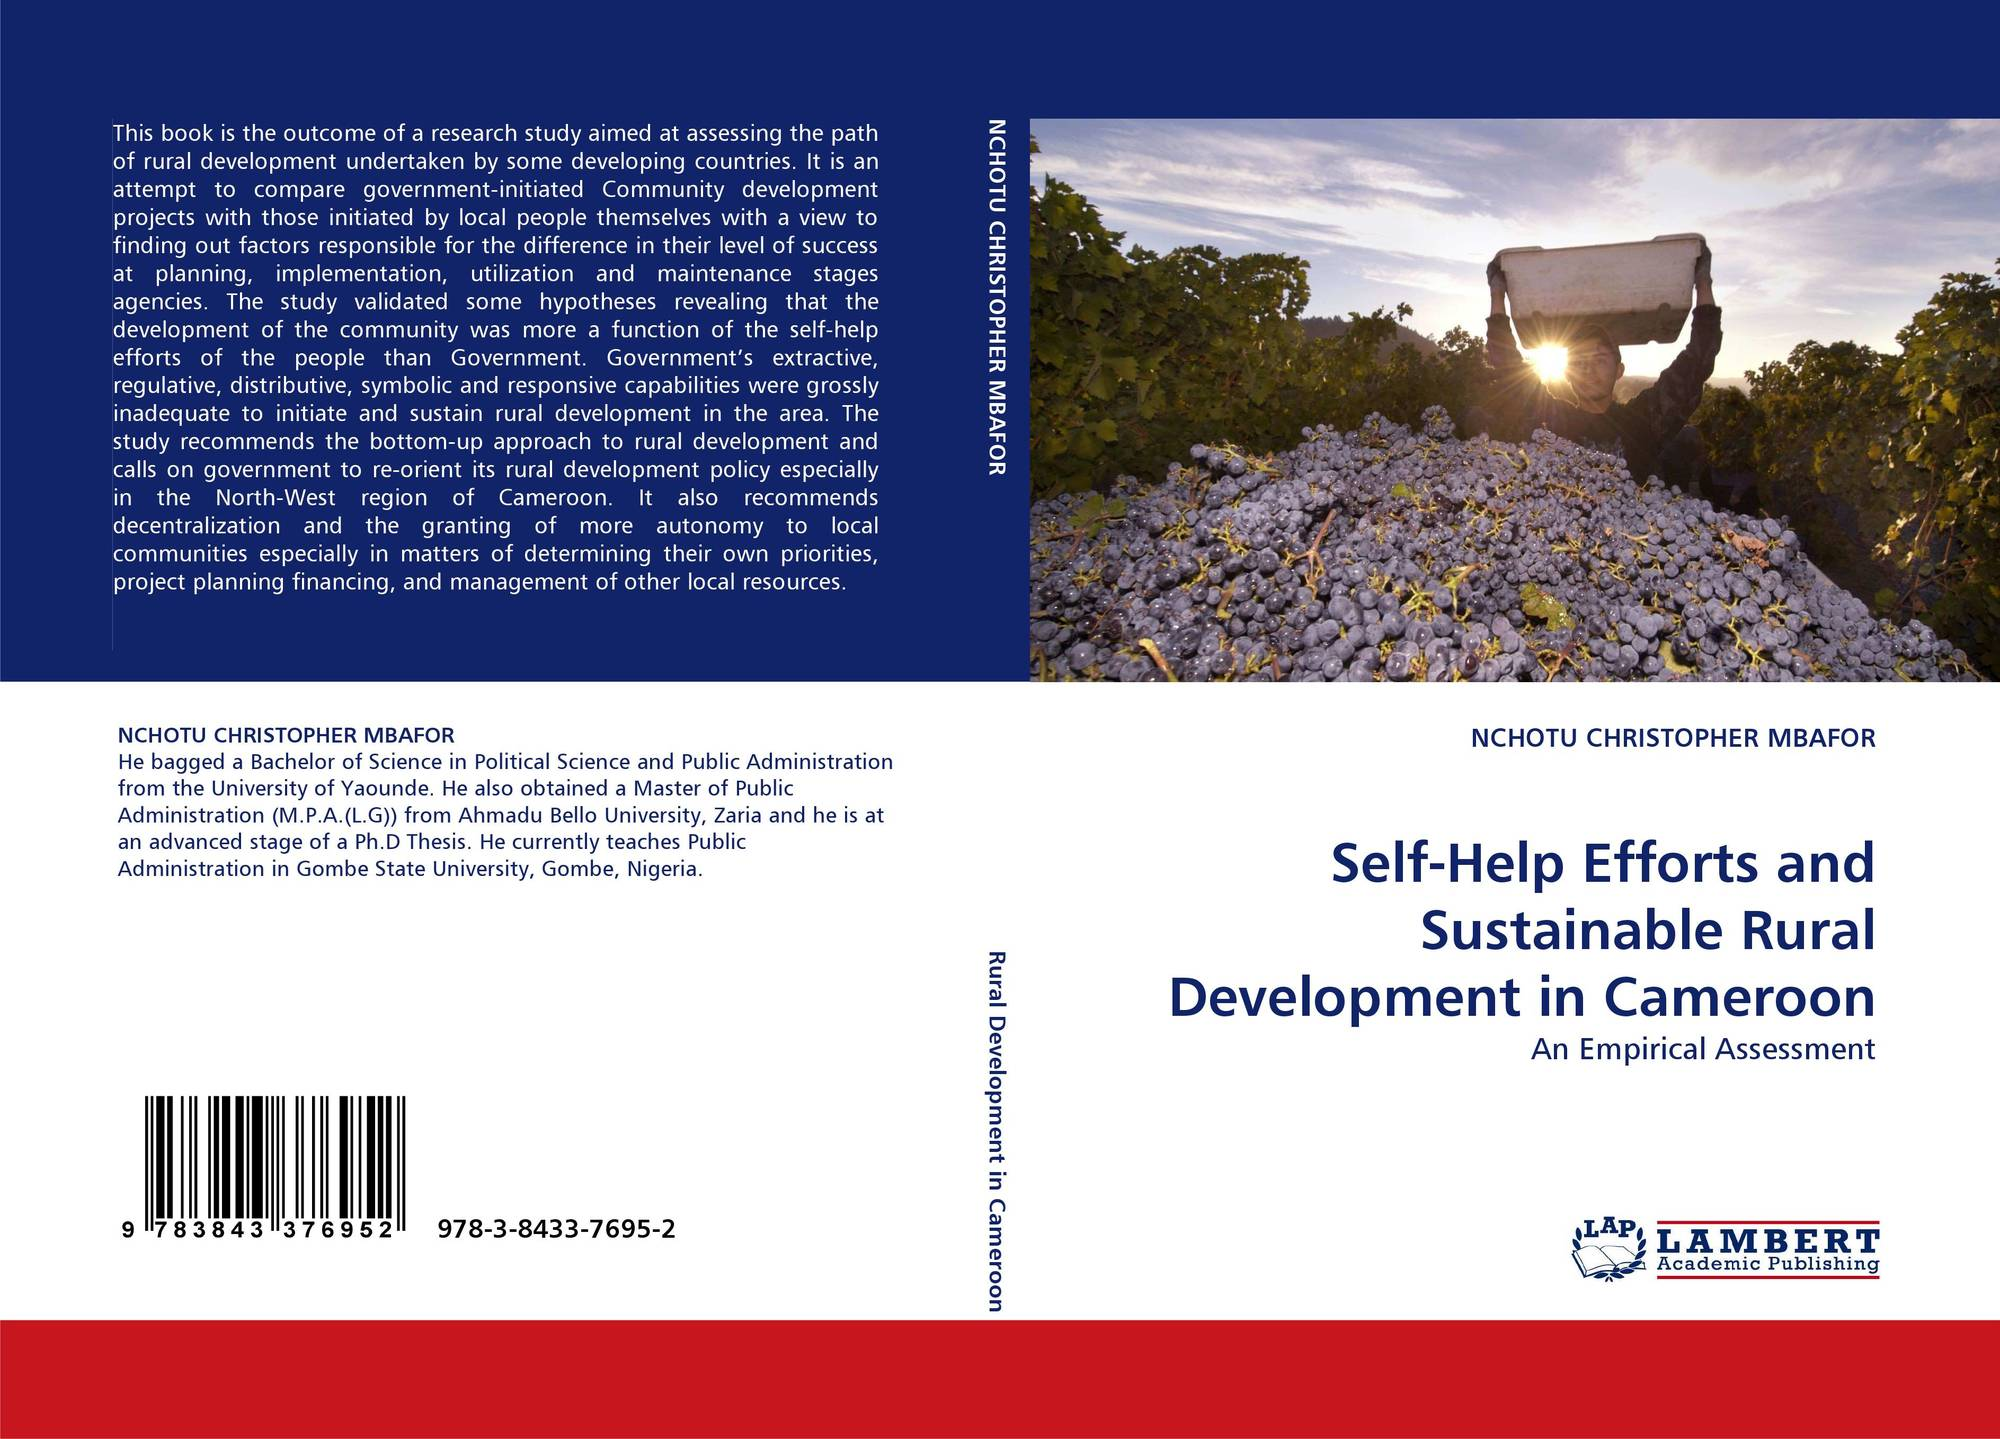 Self-Help Efforts and Sustainable Rural Development in